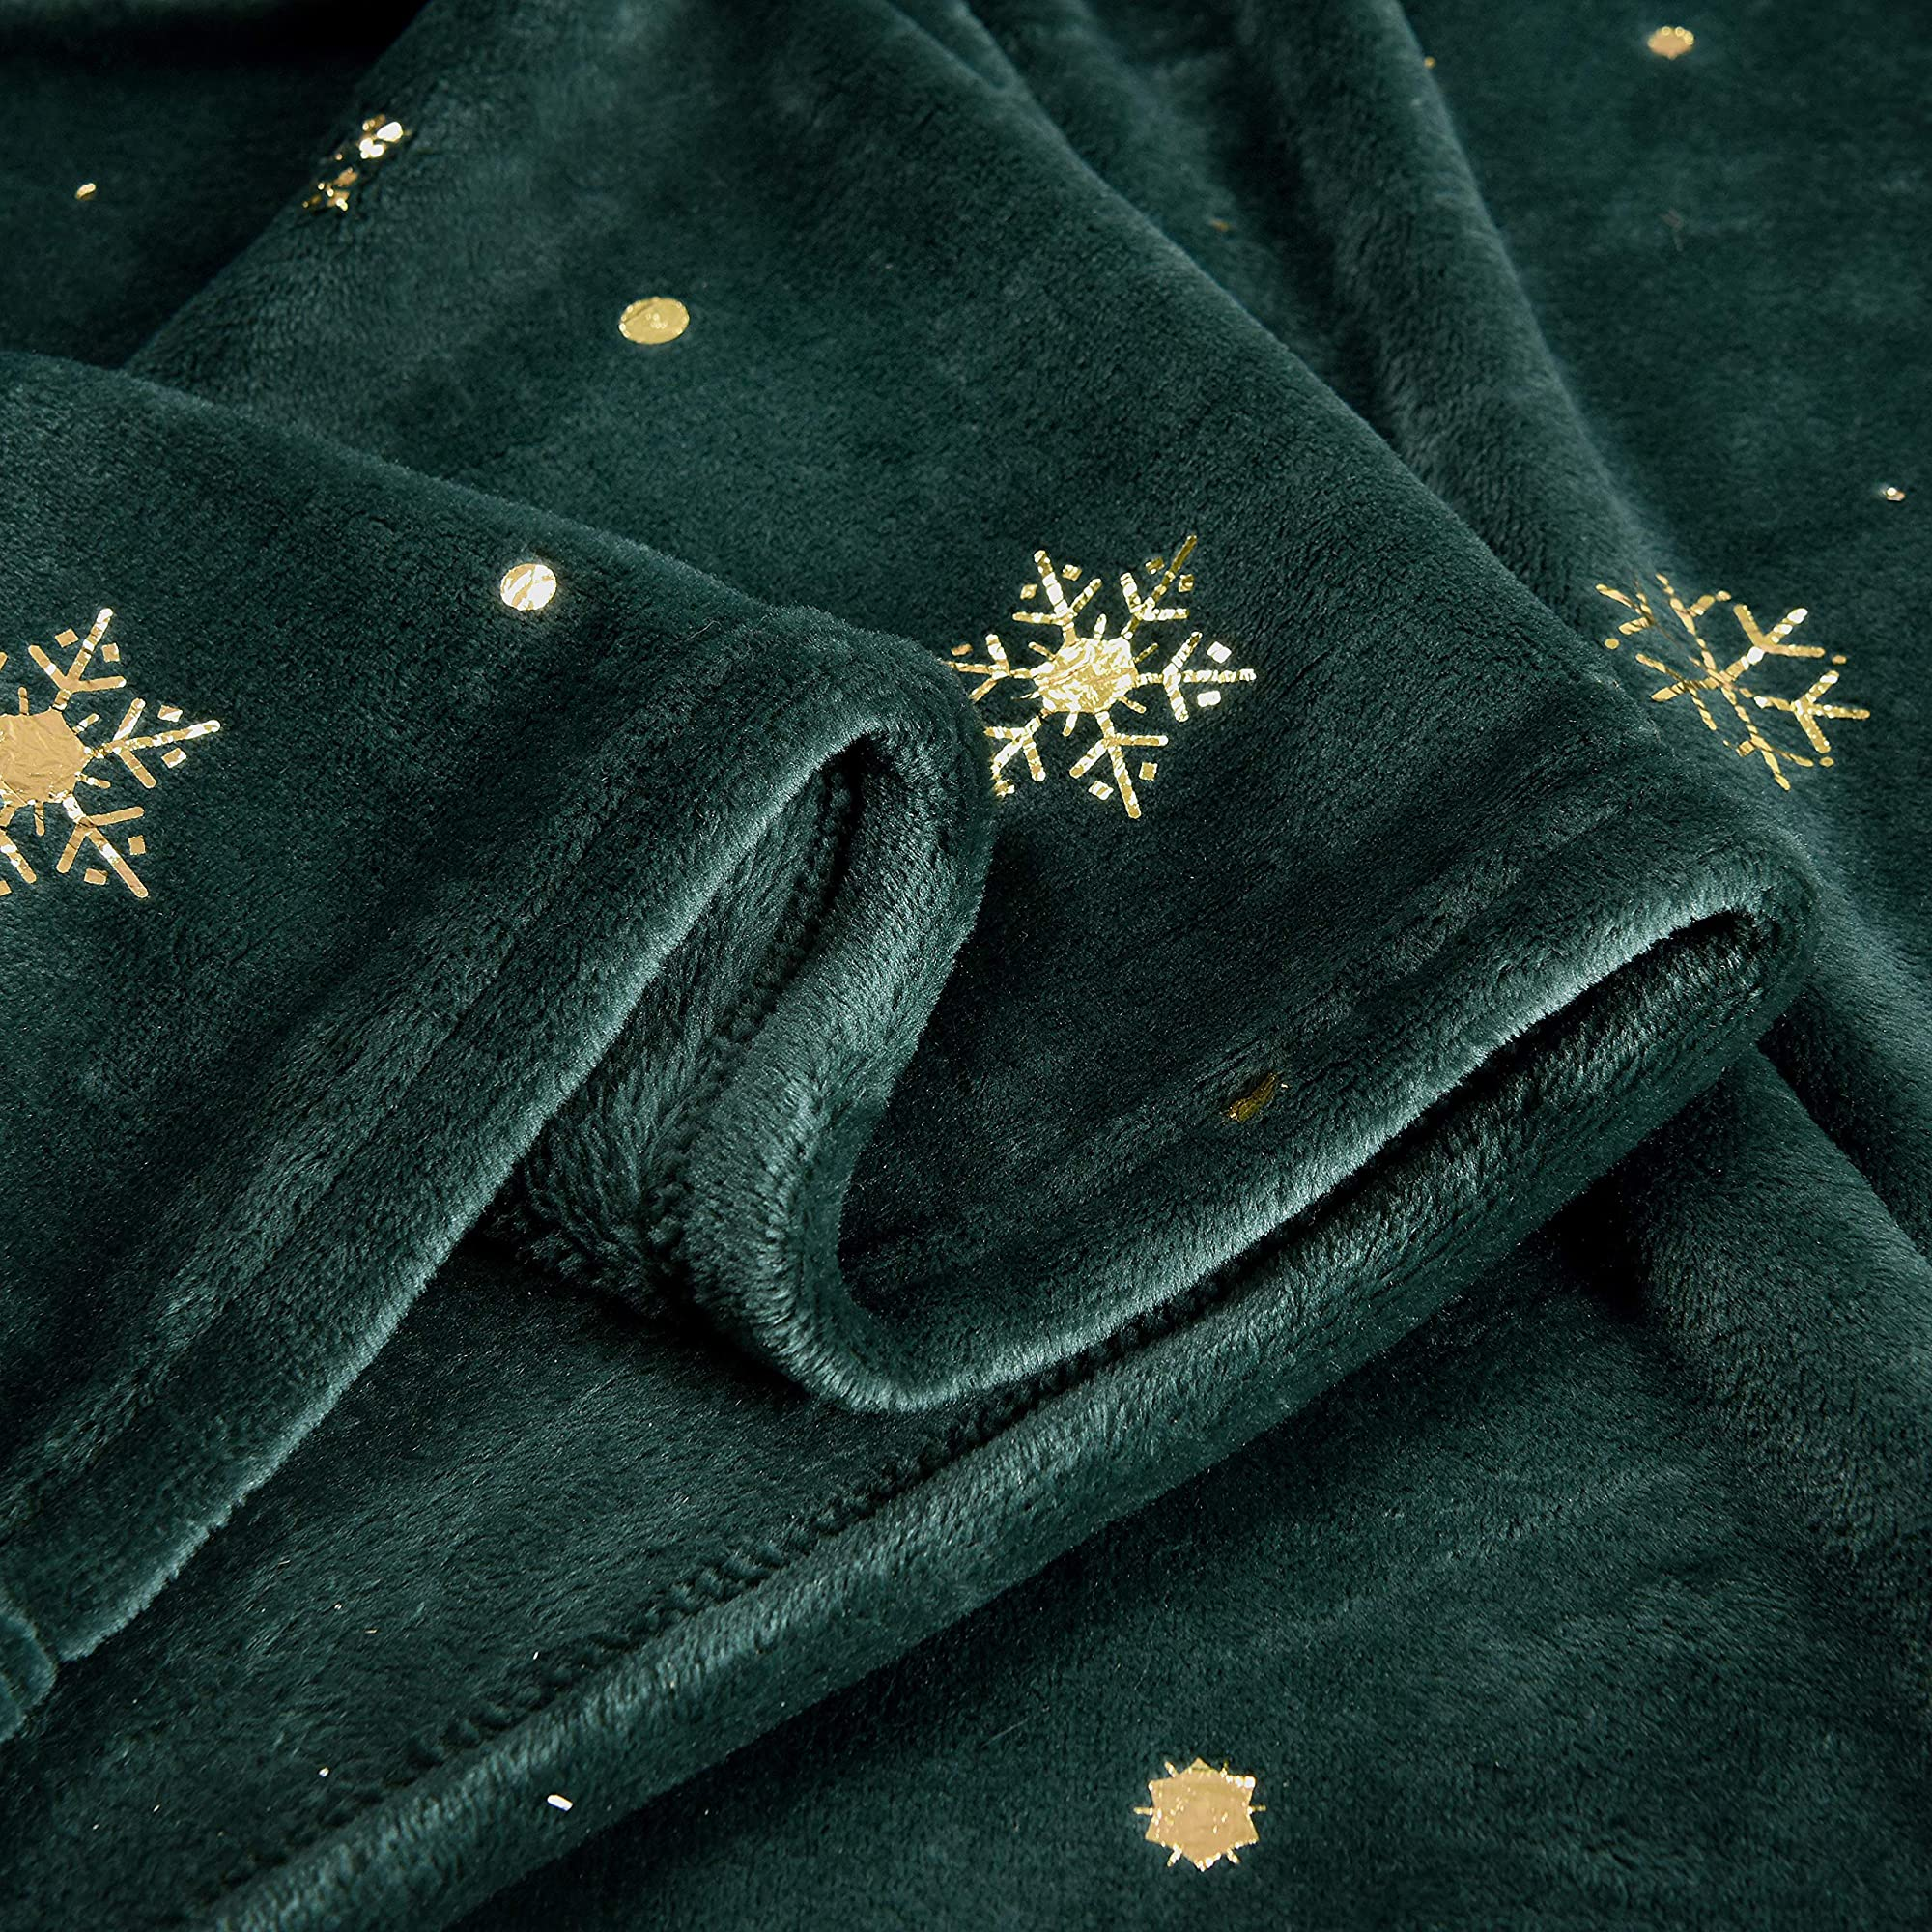 Starry Flannel Fleece Throw Blanket